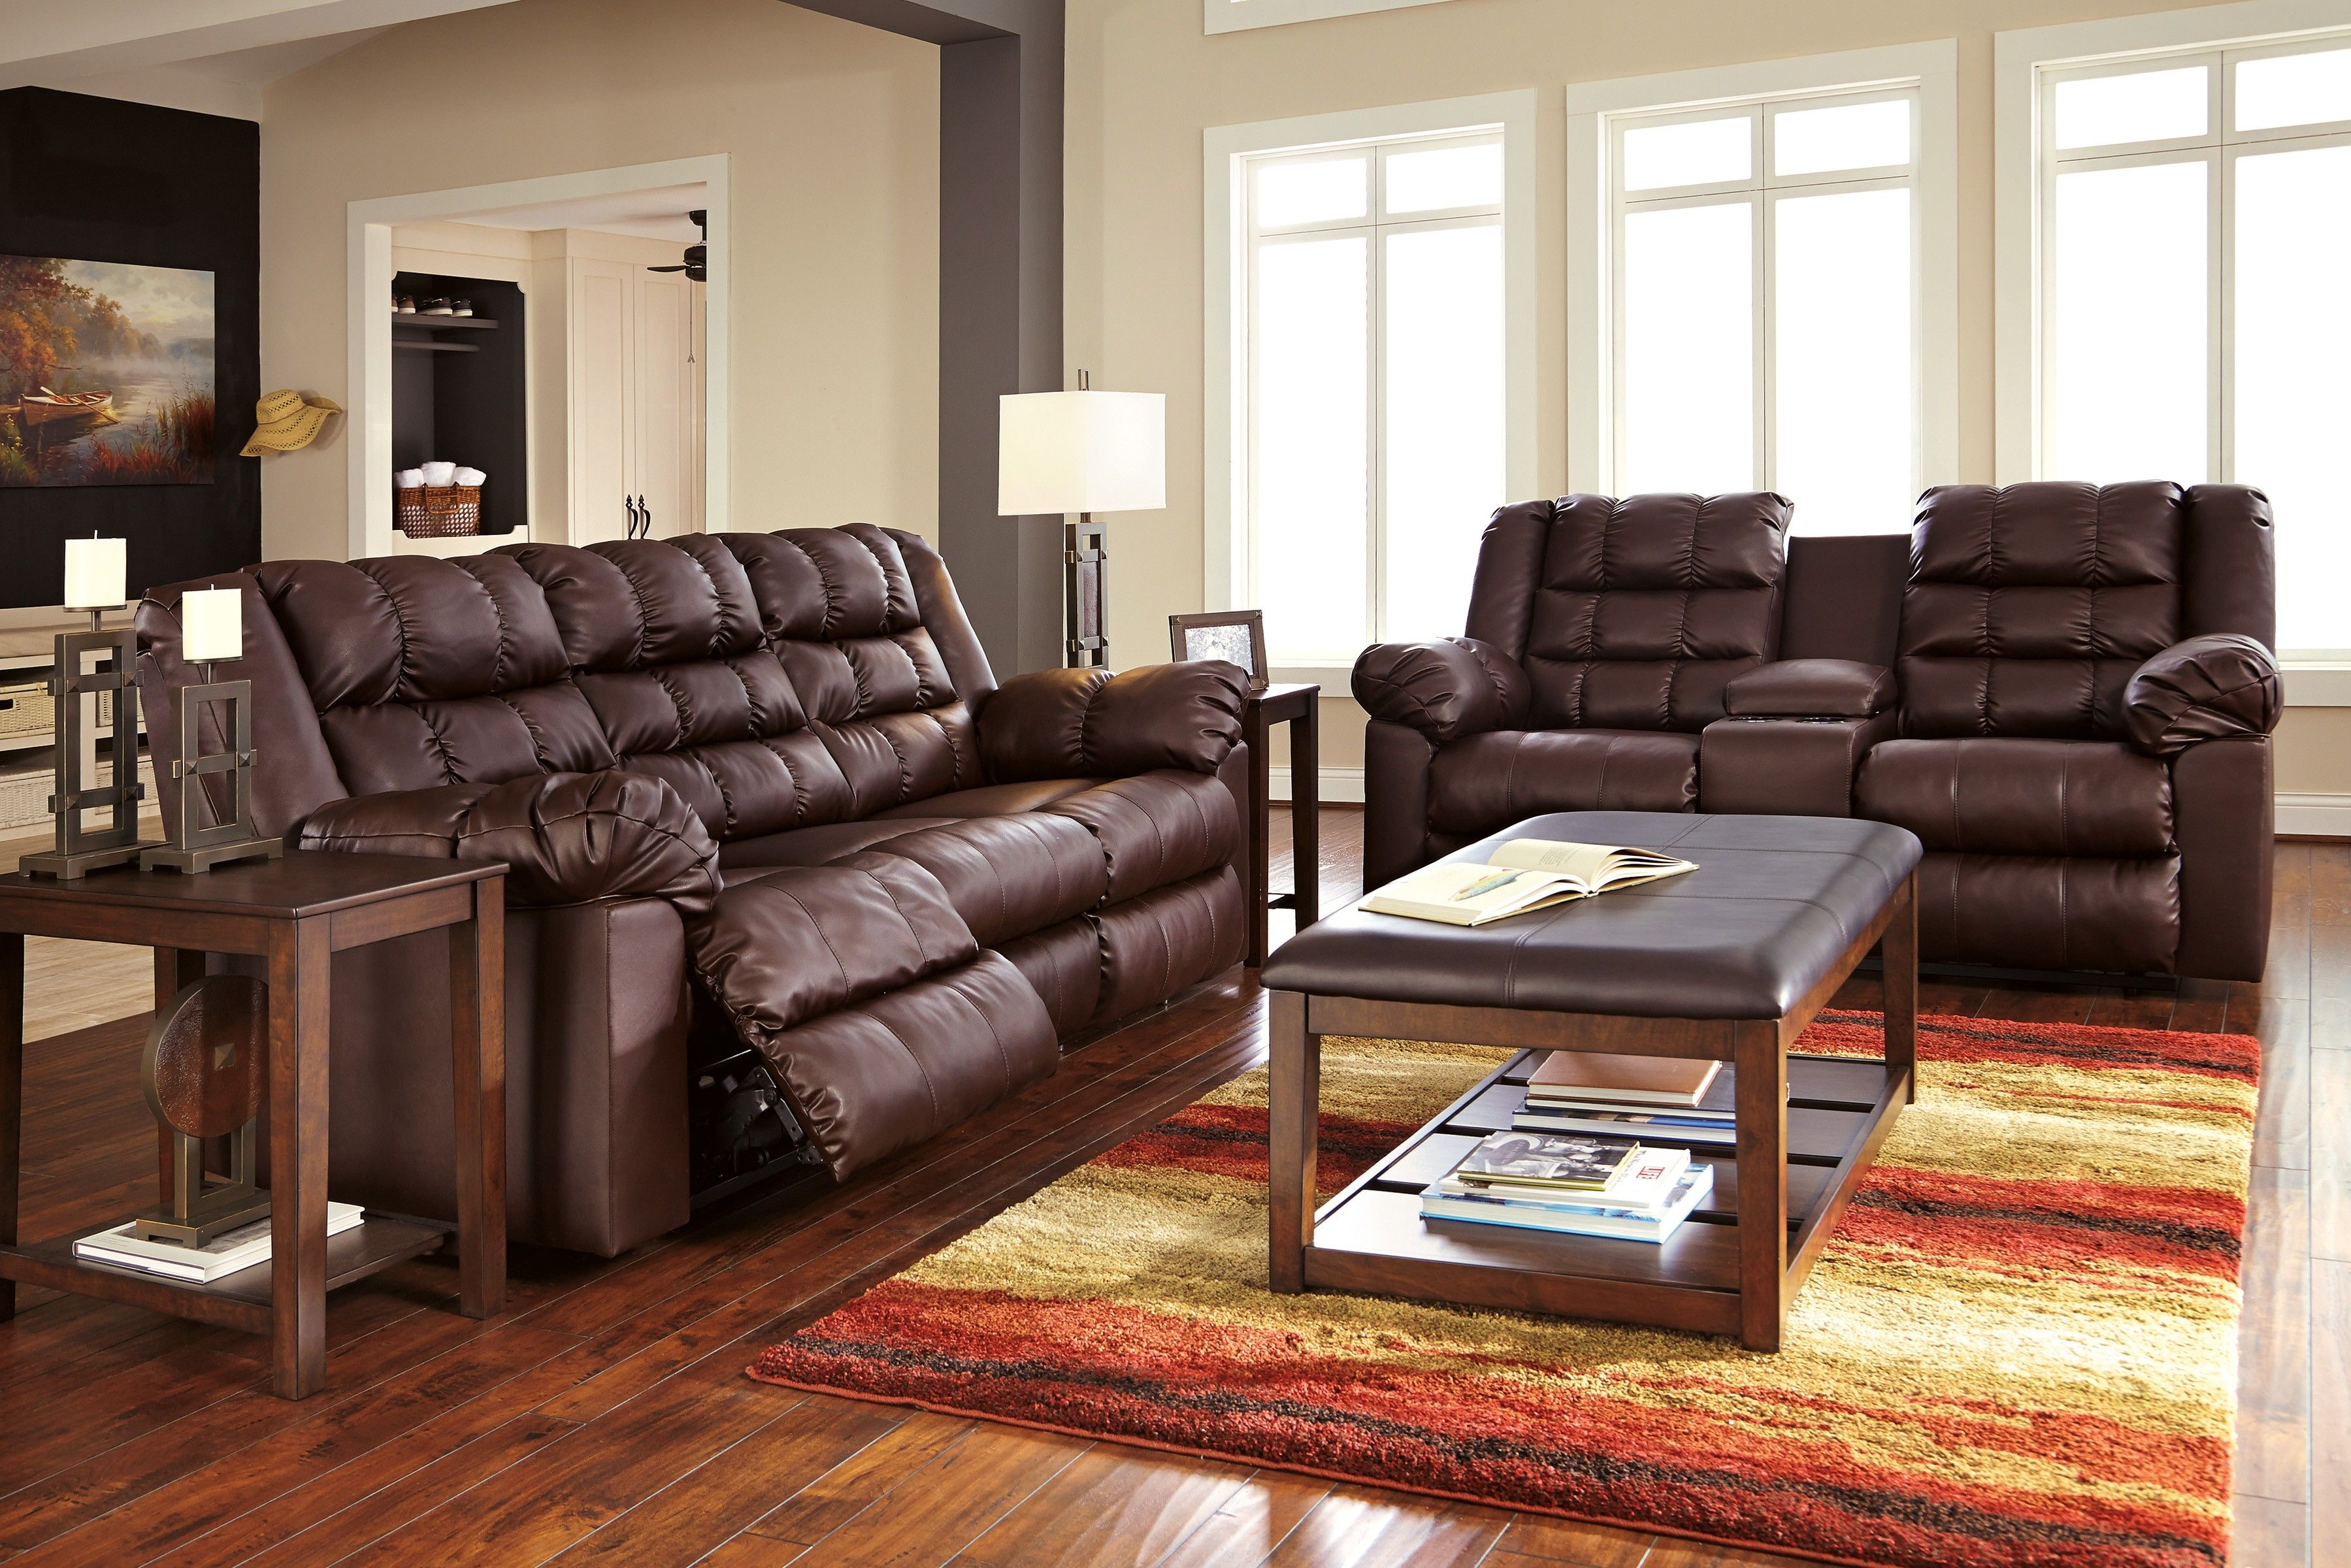 Brolayne Wide Seated Sofa And Love Set Available At All American Furniture In Lakeland Fl